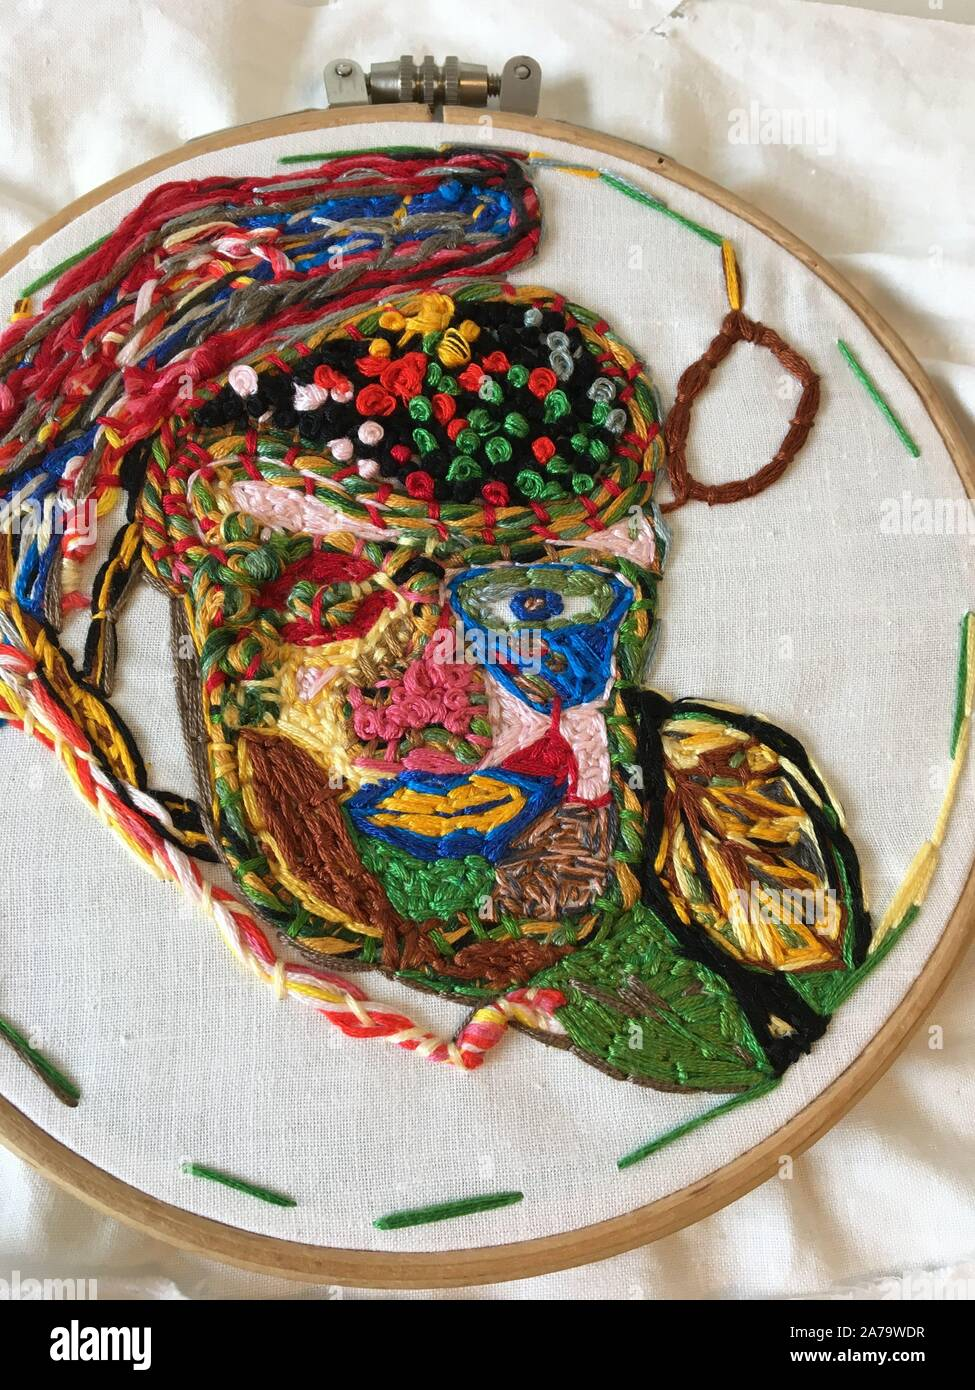 Homeless asyum seeker handsewn concept on circular wooden hoop using DMC embroidery stitching threads.Red cross, Sweden.Work in progress-mobile pic(1) Stock Photo